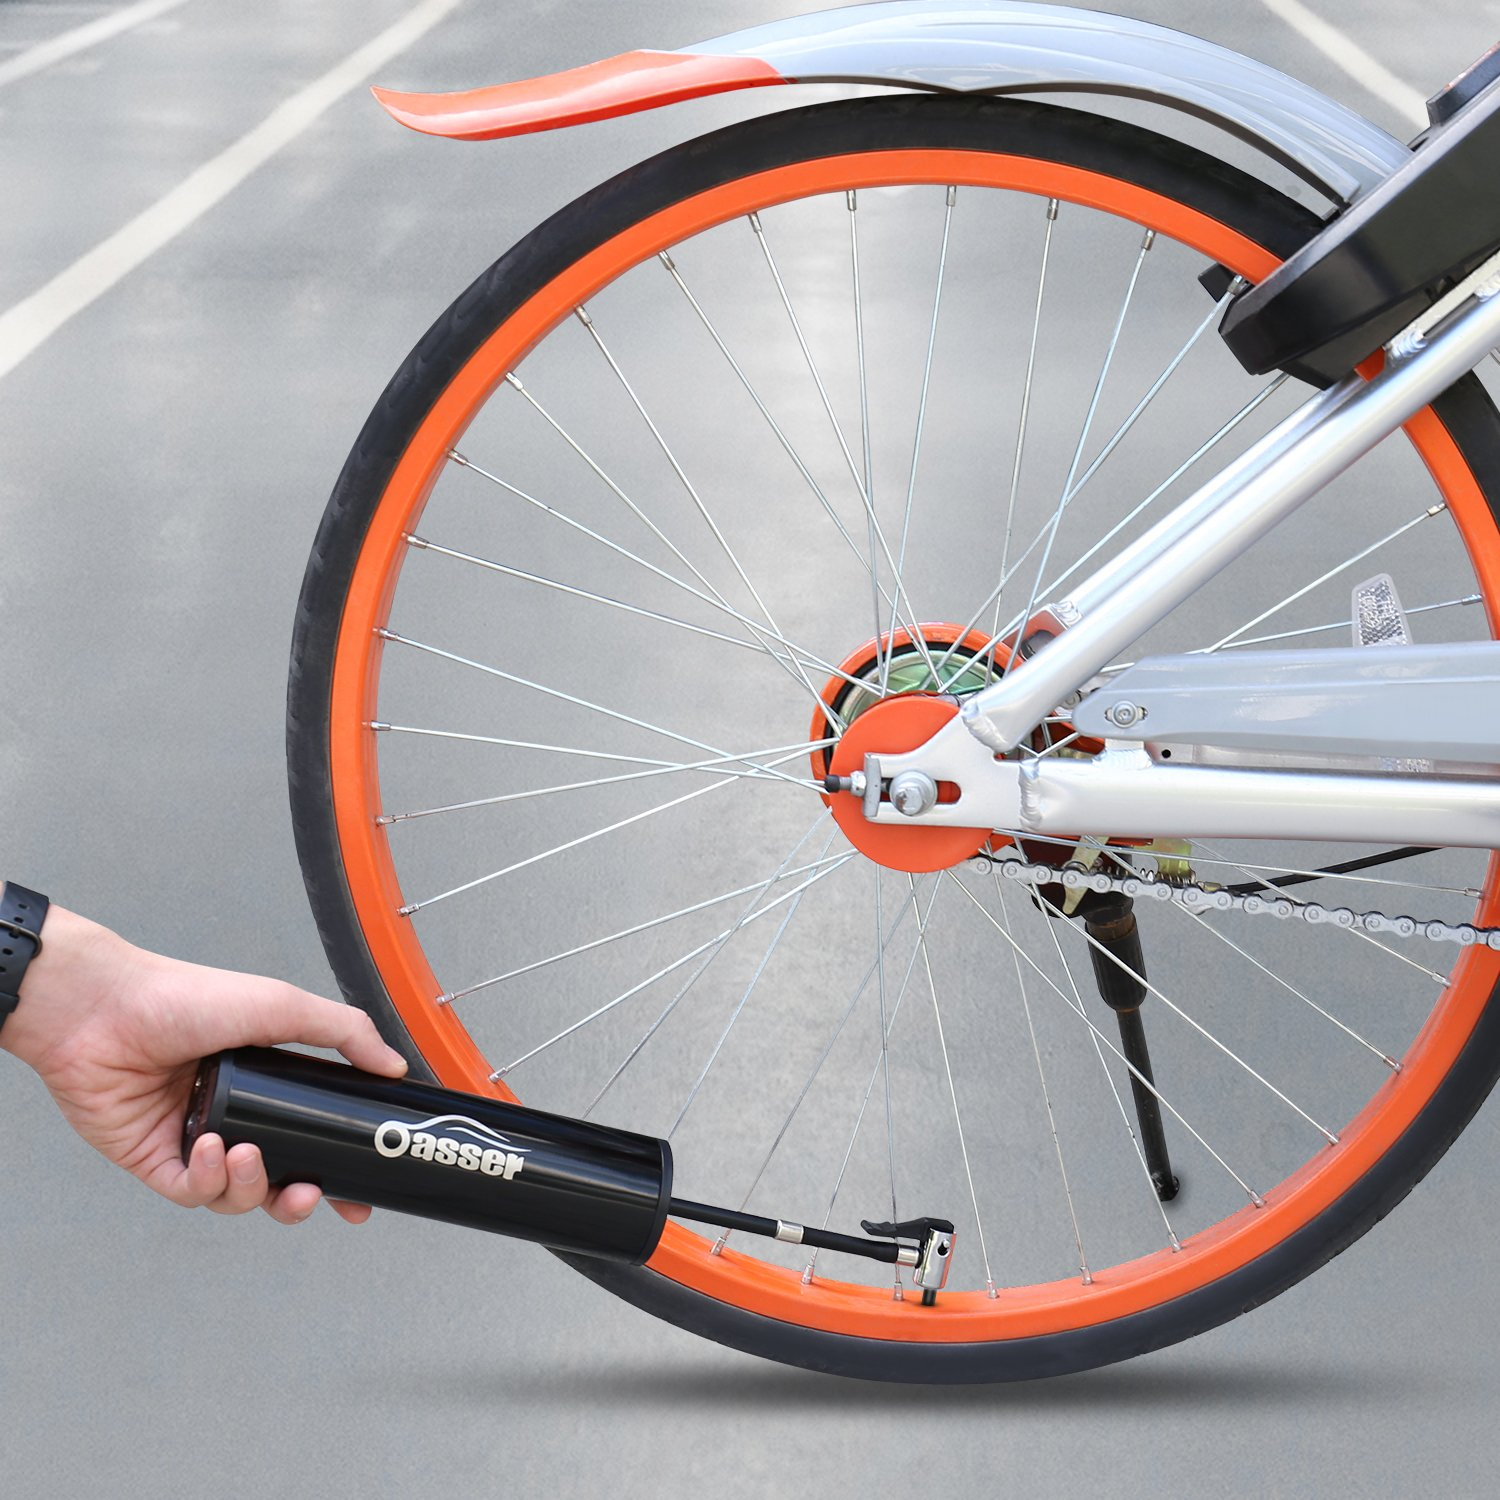 image of oasser pump airing up bicycle tire